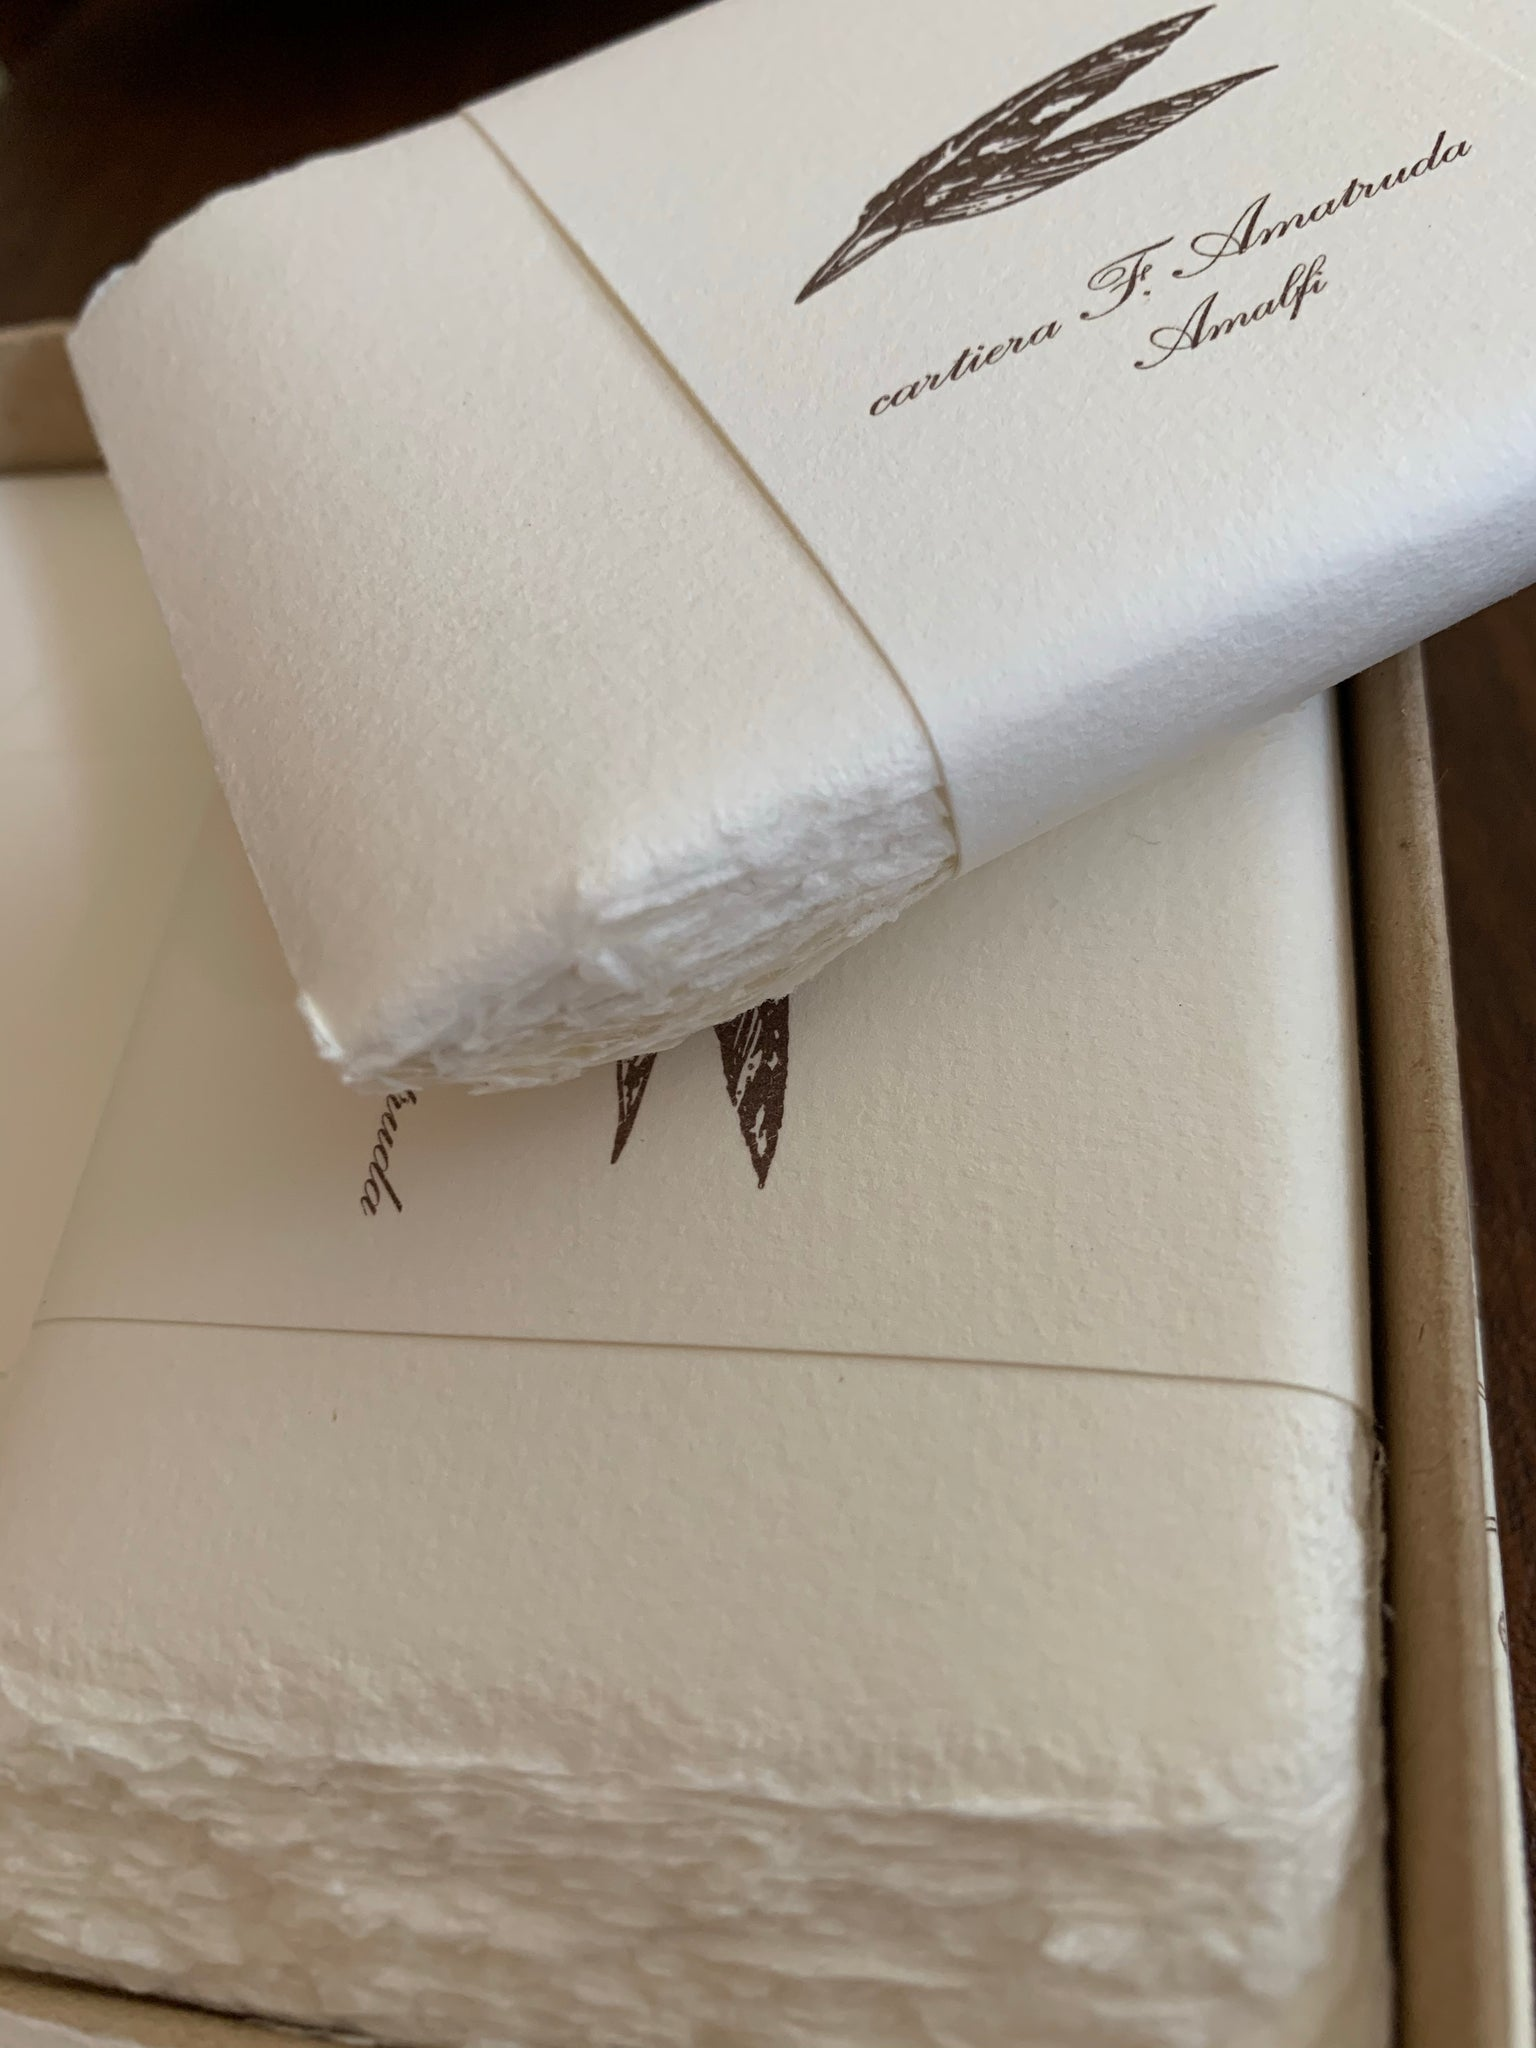 "Amalfi Box of 50 Folded Cards/Envelopes 4 1/4"" x 2 3/4"" by Amatruda"